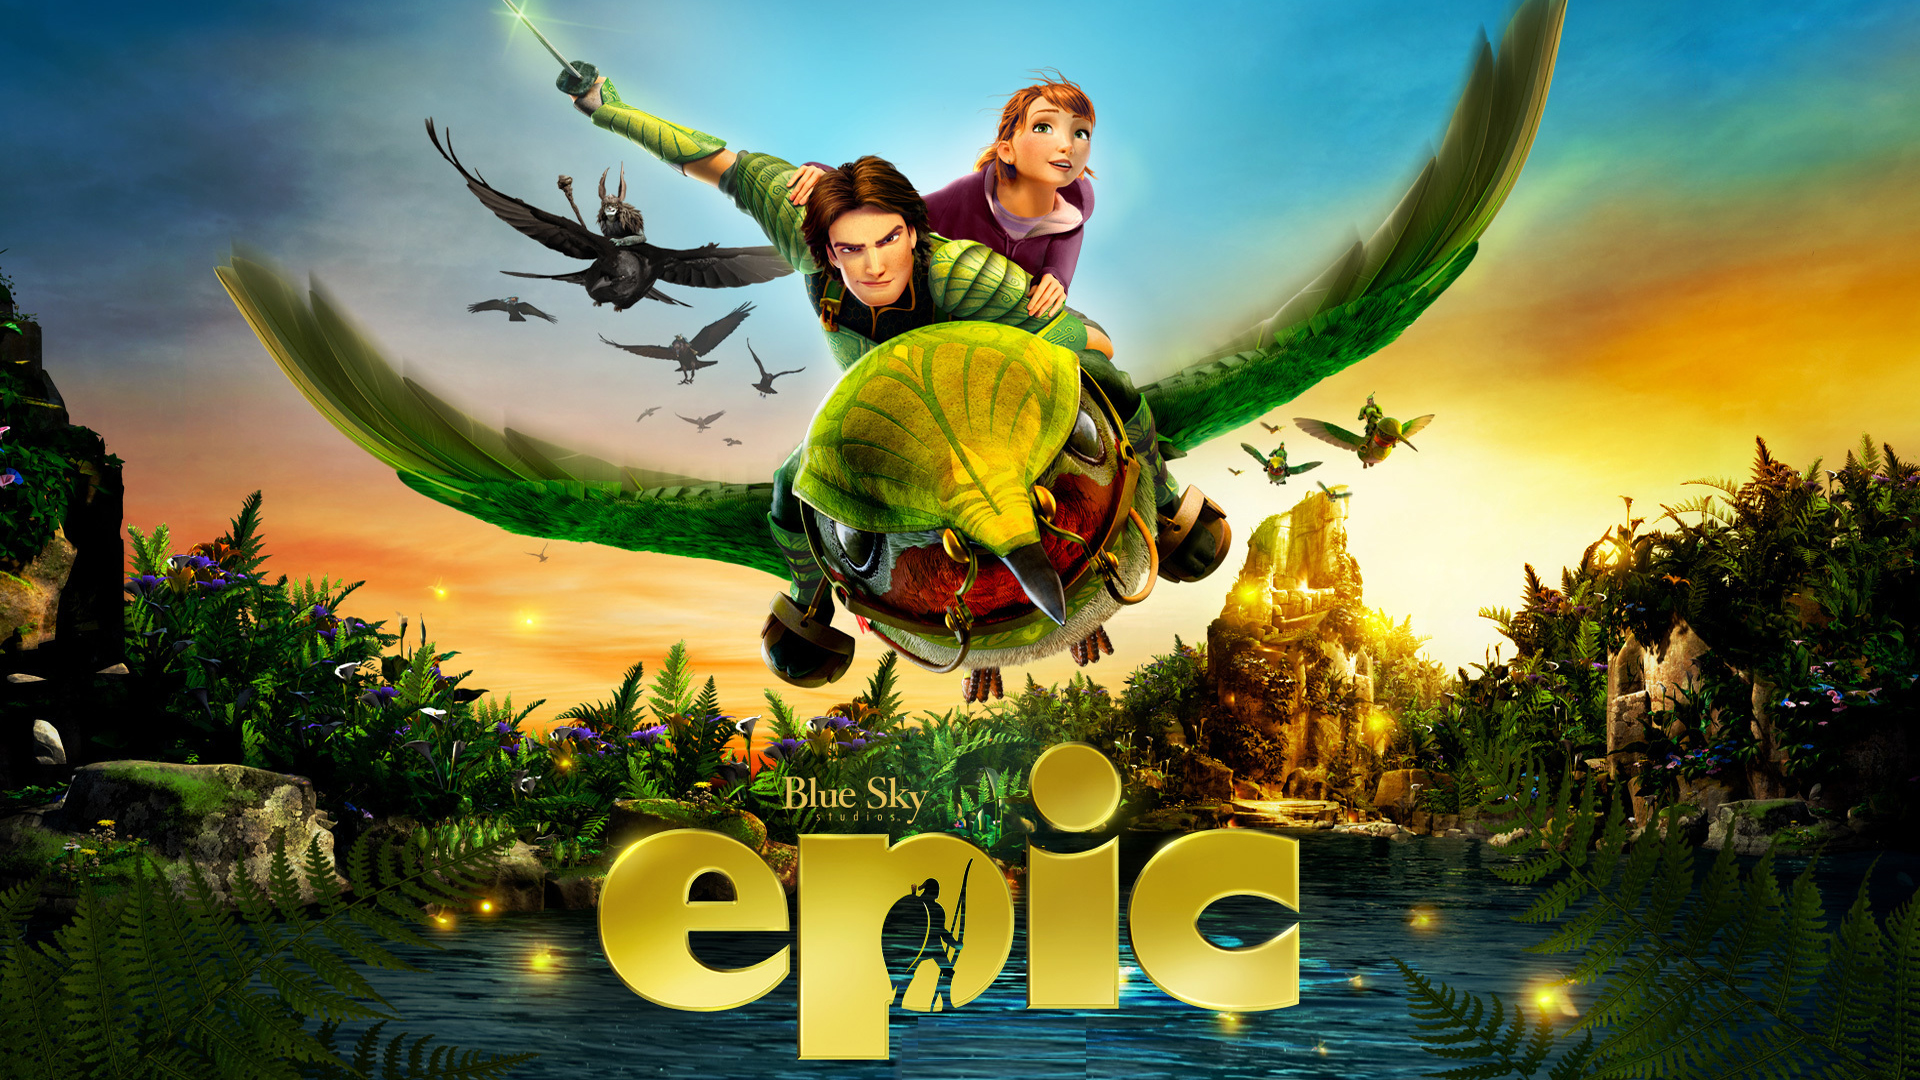 Epic Pics Movie Collection Epic Movie 1920x1080 Download Hd Wallpaper Wallpapertip